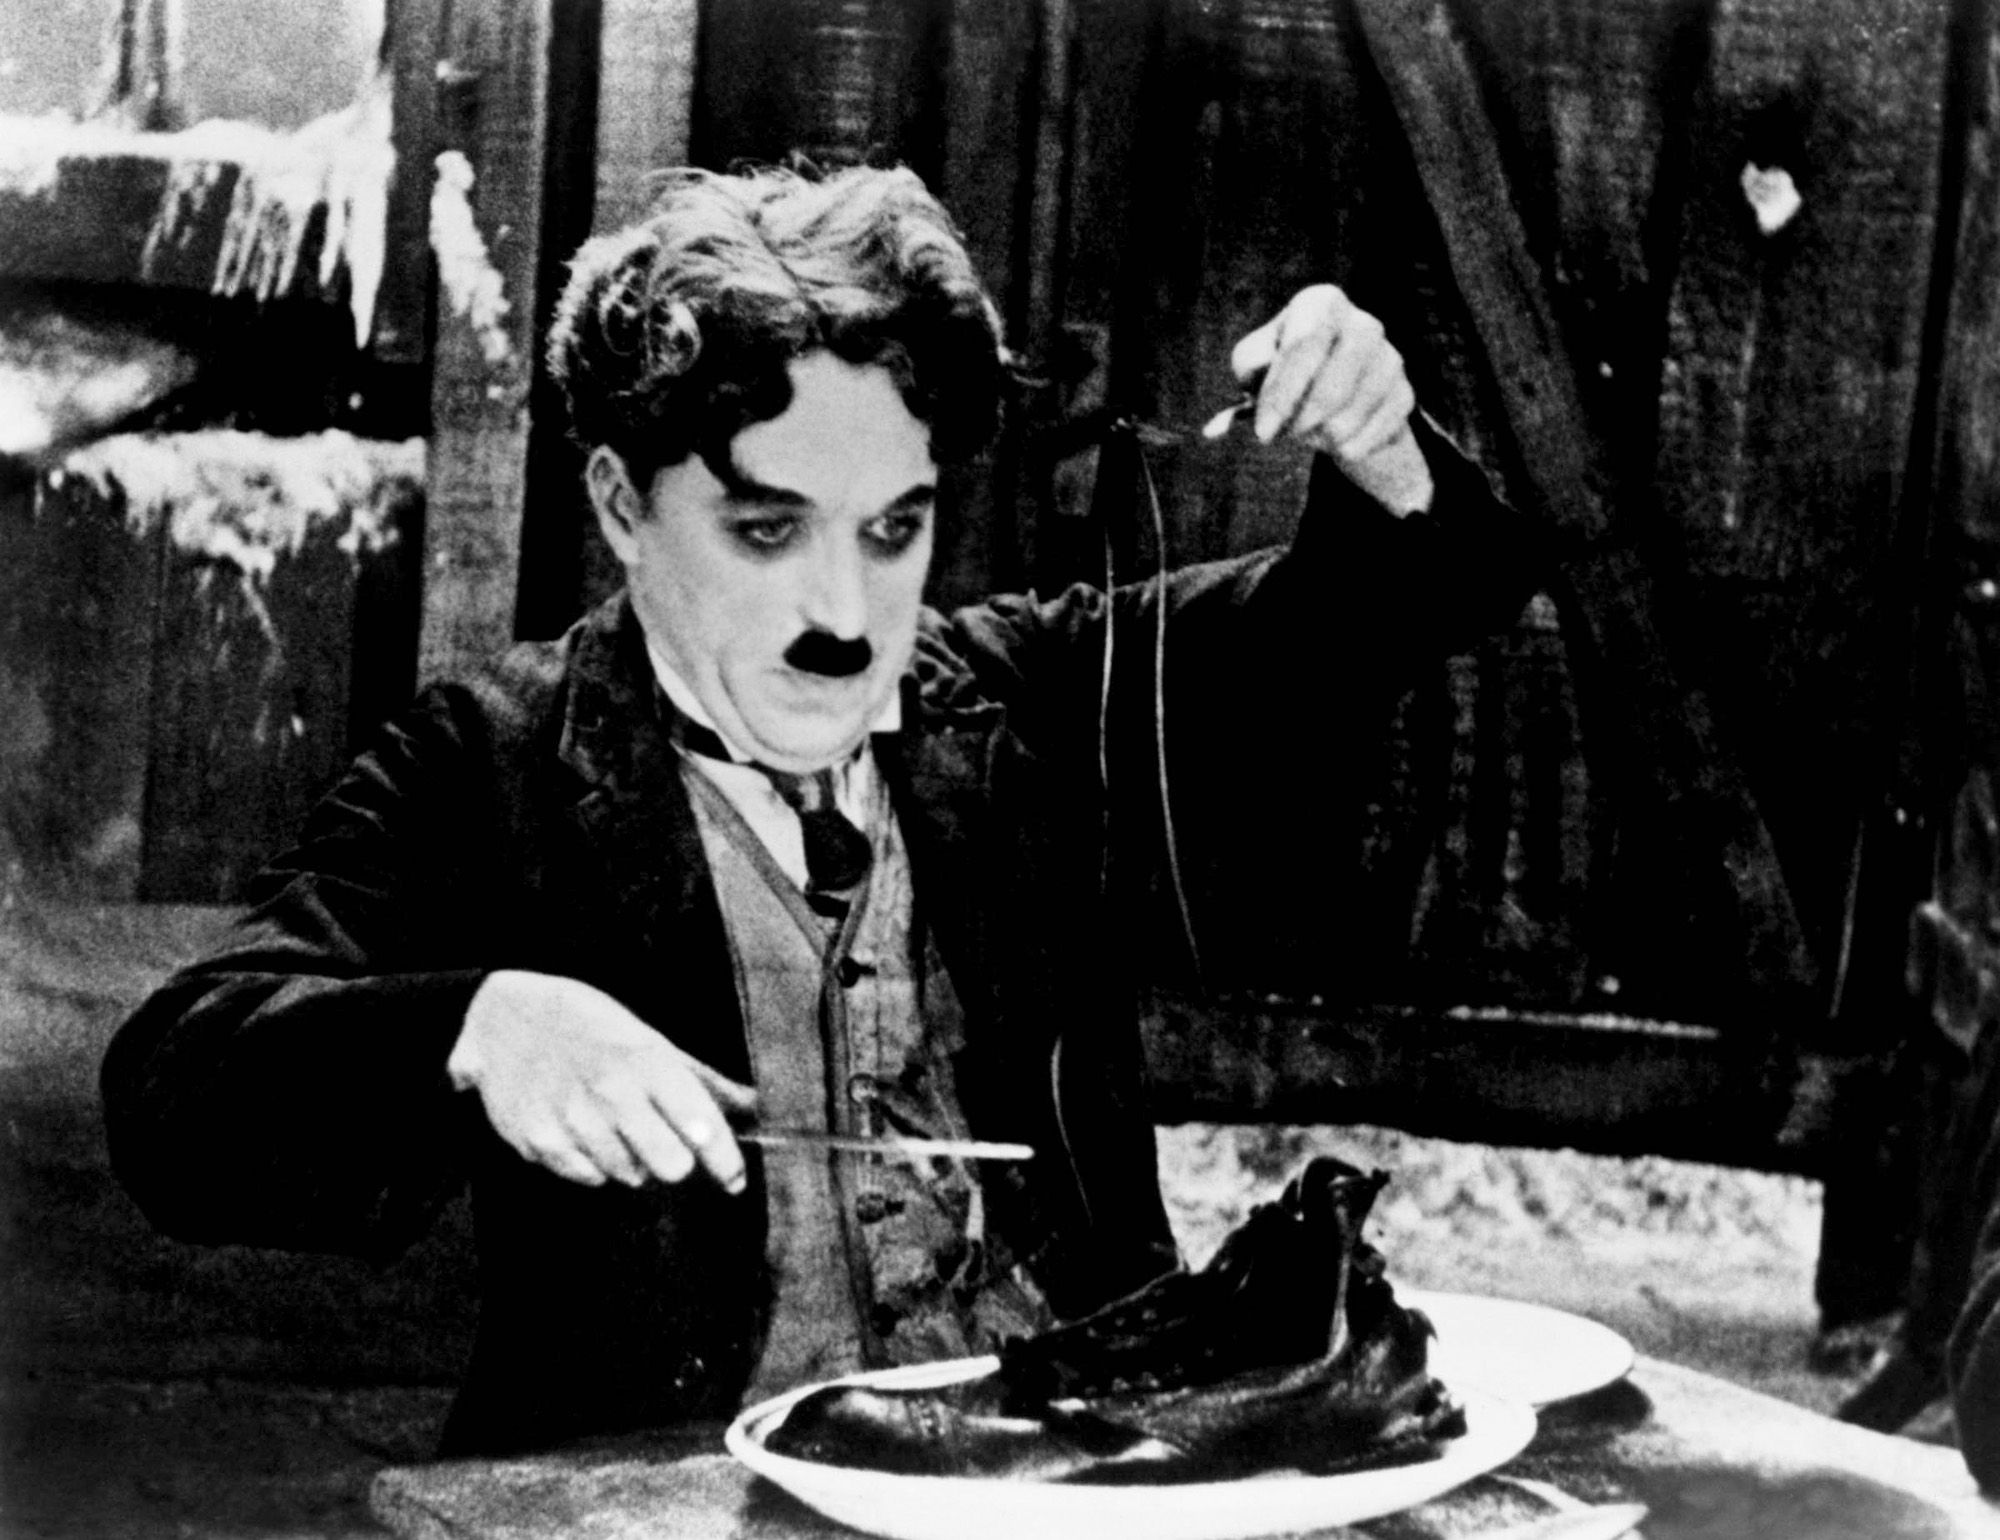 Film - Charlie Chaplin - 1925 - Gold Rush - Corsa all'Oro - scene - shoe dinner